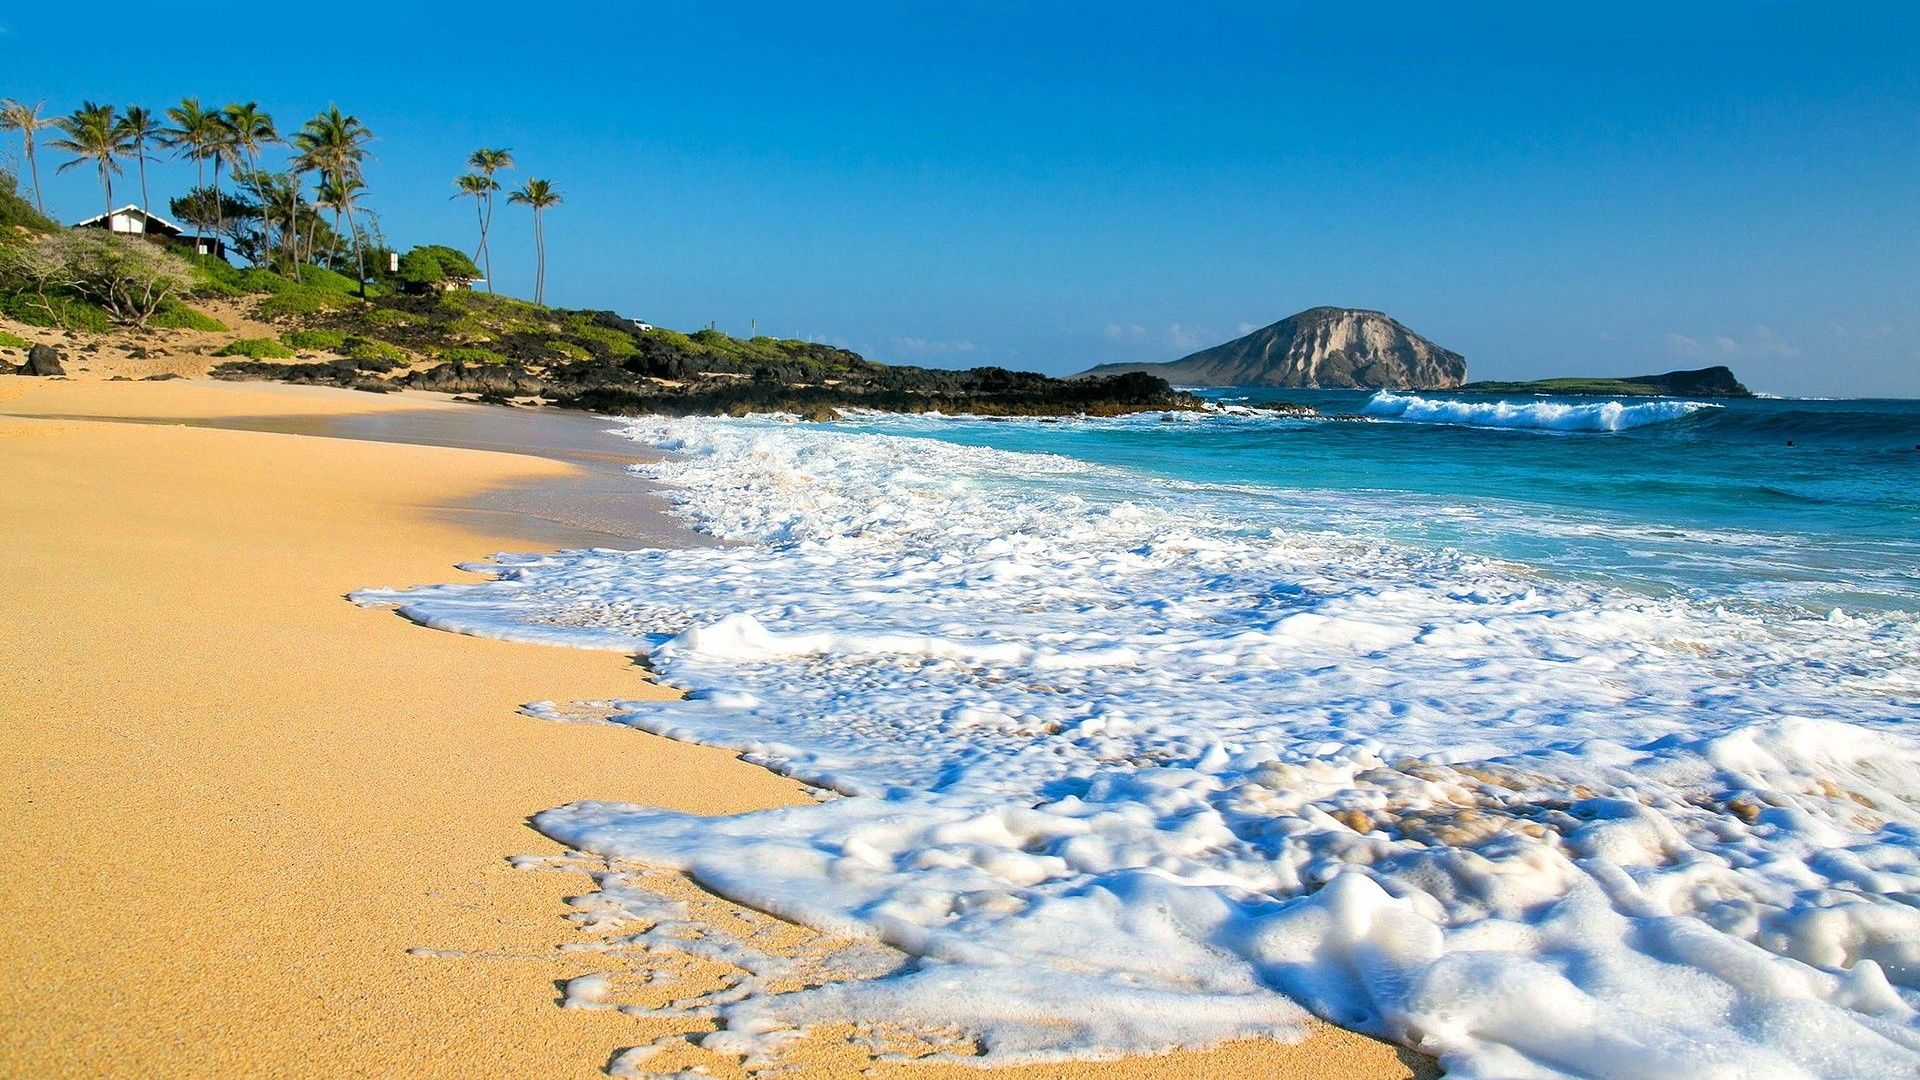 Hawaii Wallpapers, Pictures, Images